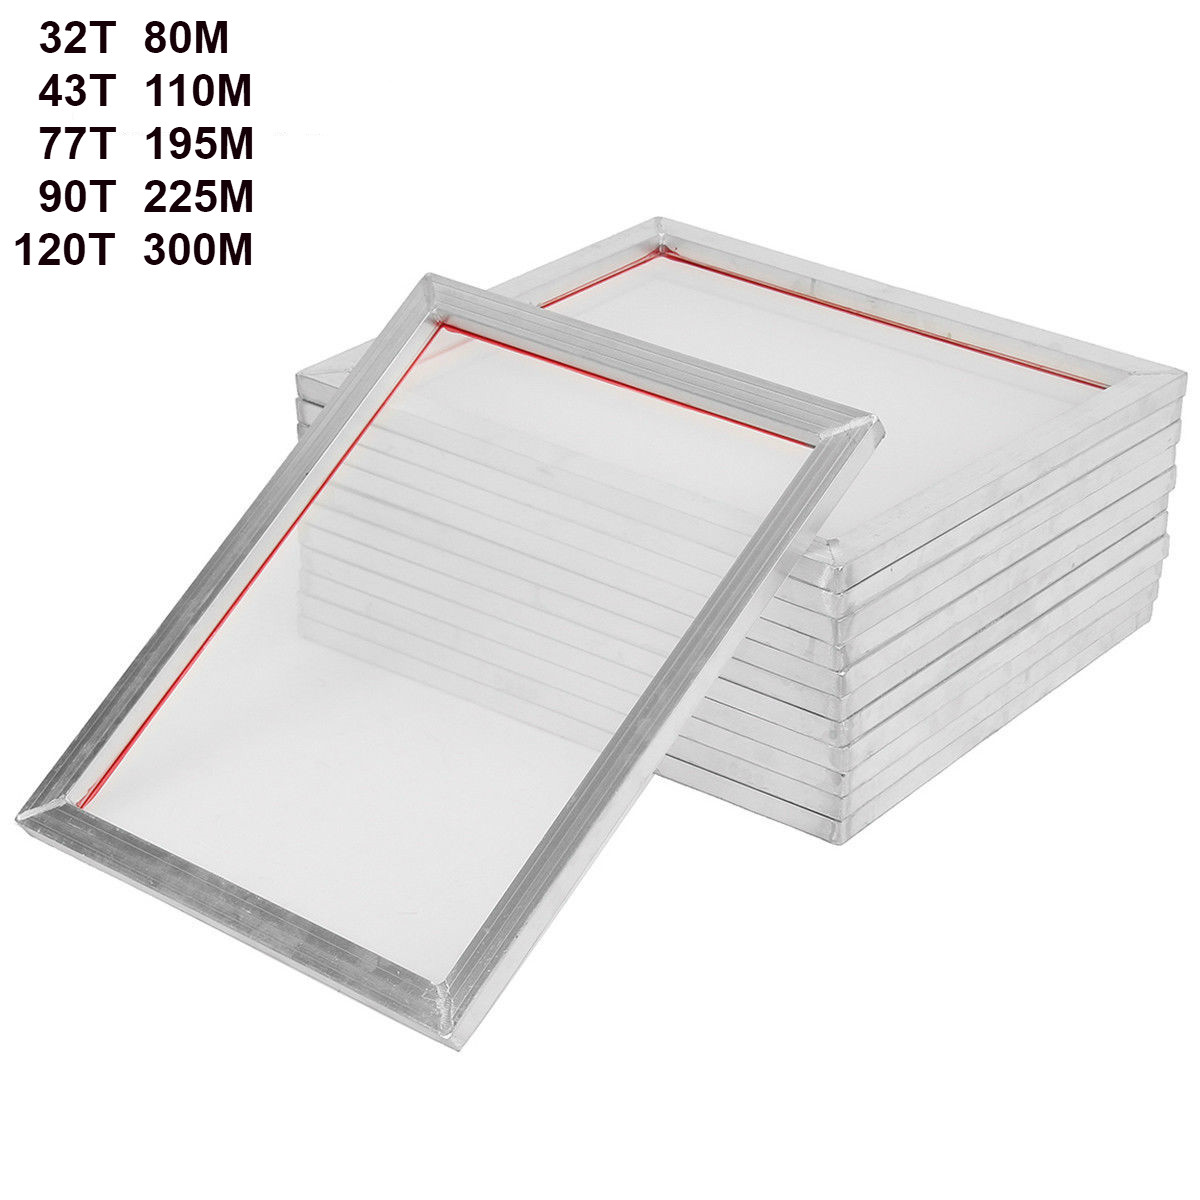 5Pack 46cm*41cm Aluminum Silk Screen Printing Press Frame Screens White 18'' X16'' 32T 43T 77T 90T 120T Mesh Out Size 46cm*41cm